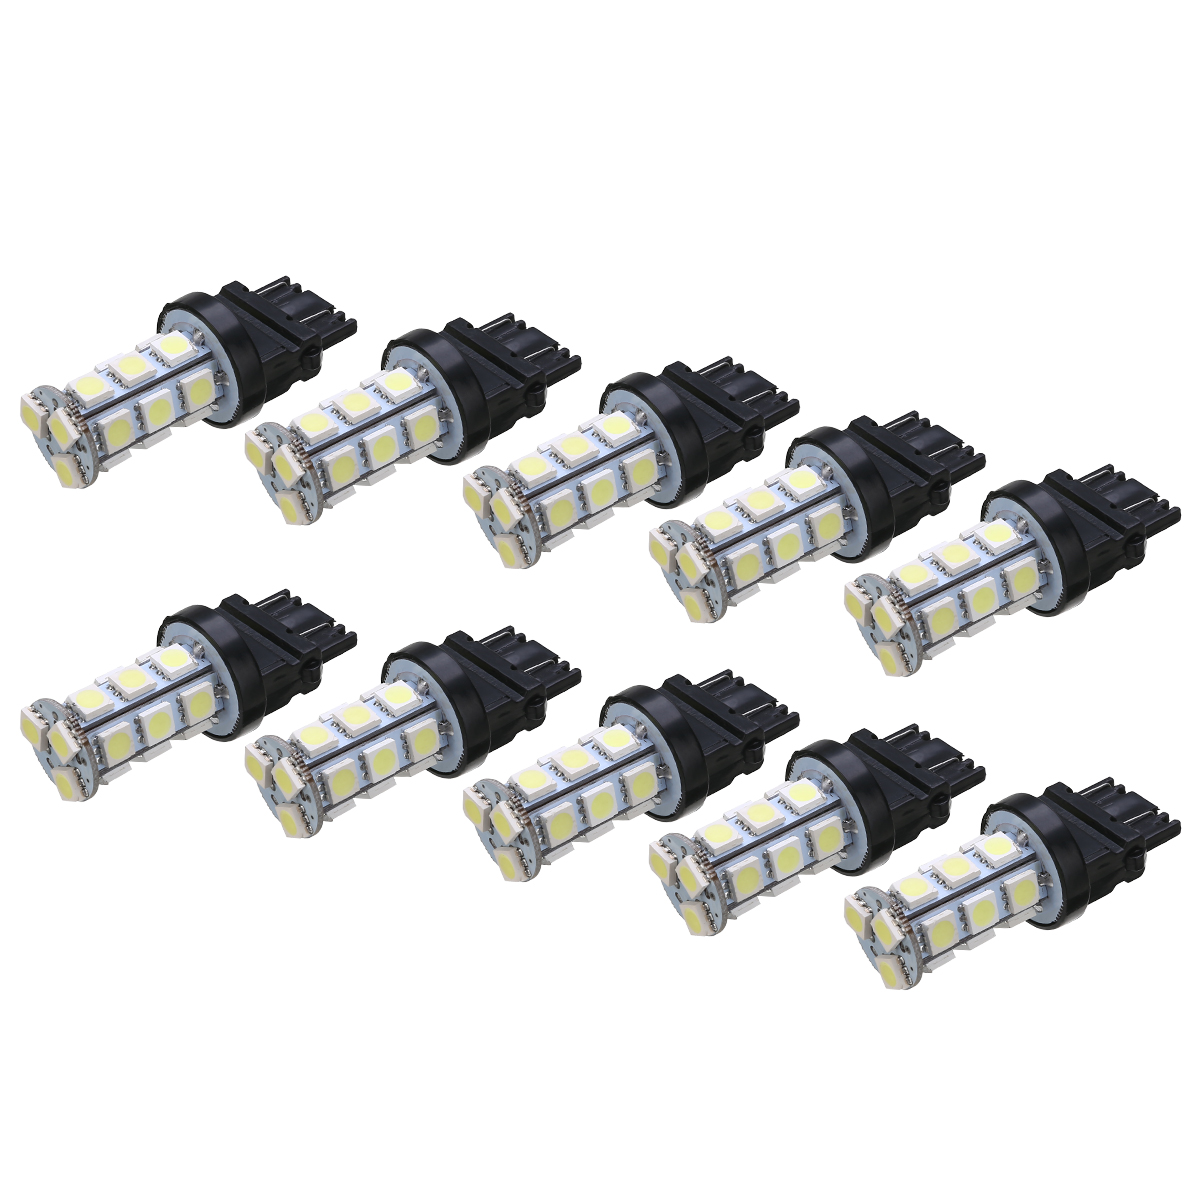 Mayitr 10x 3157 18smd 12V 6000K White Super Bright Car Tail Brake Stop Backup Reverse Turn Signal Light Bulb